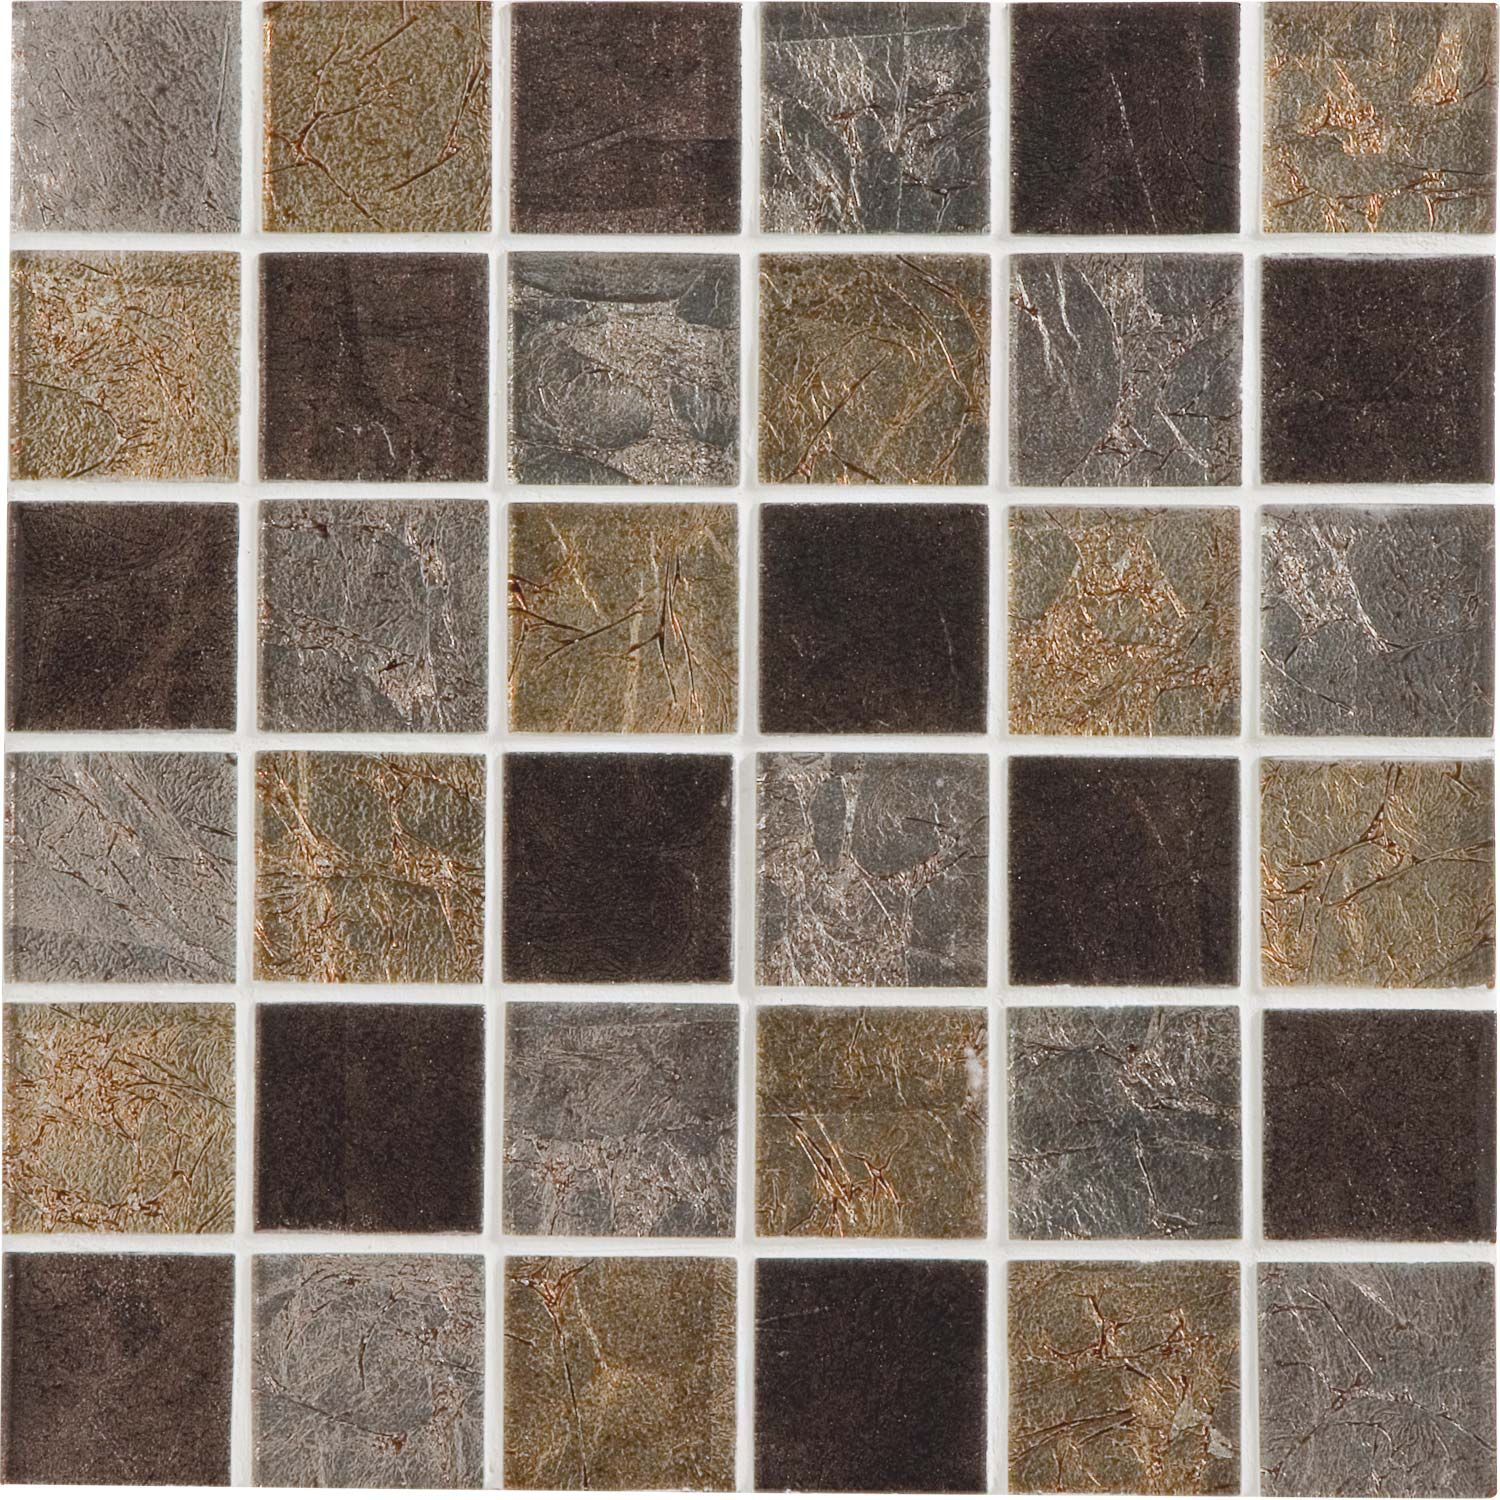 Carrelage Noir Leroy Merlin Mosaque Glass Select Mix Artens Marron X Cm Leroy Merlin